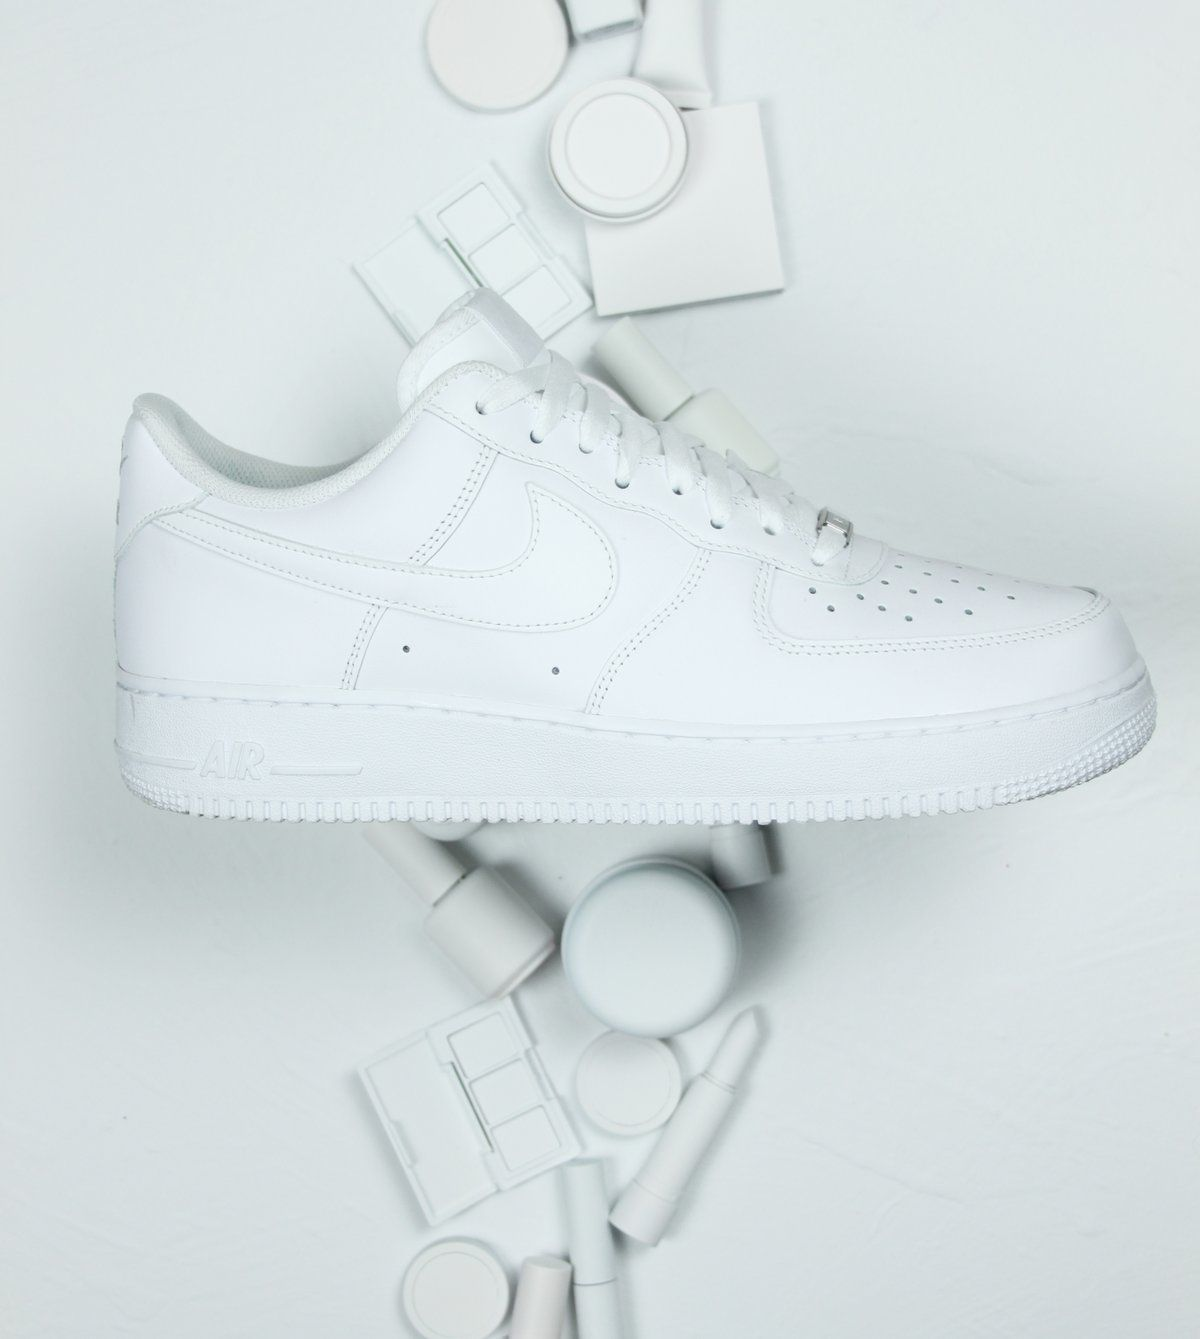 customize my own air force ones